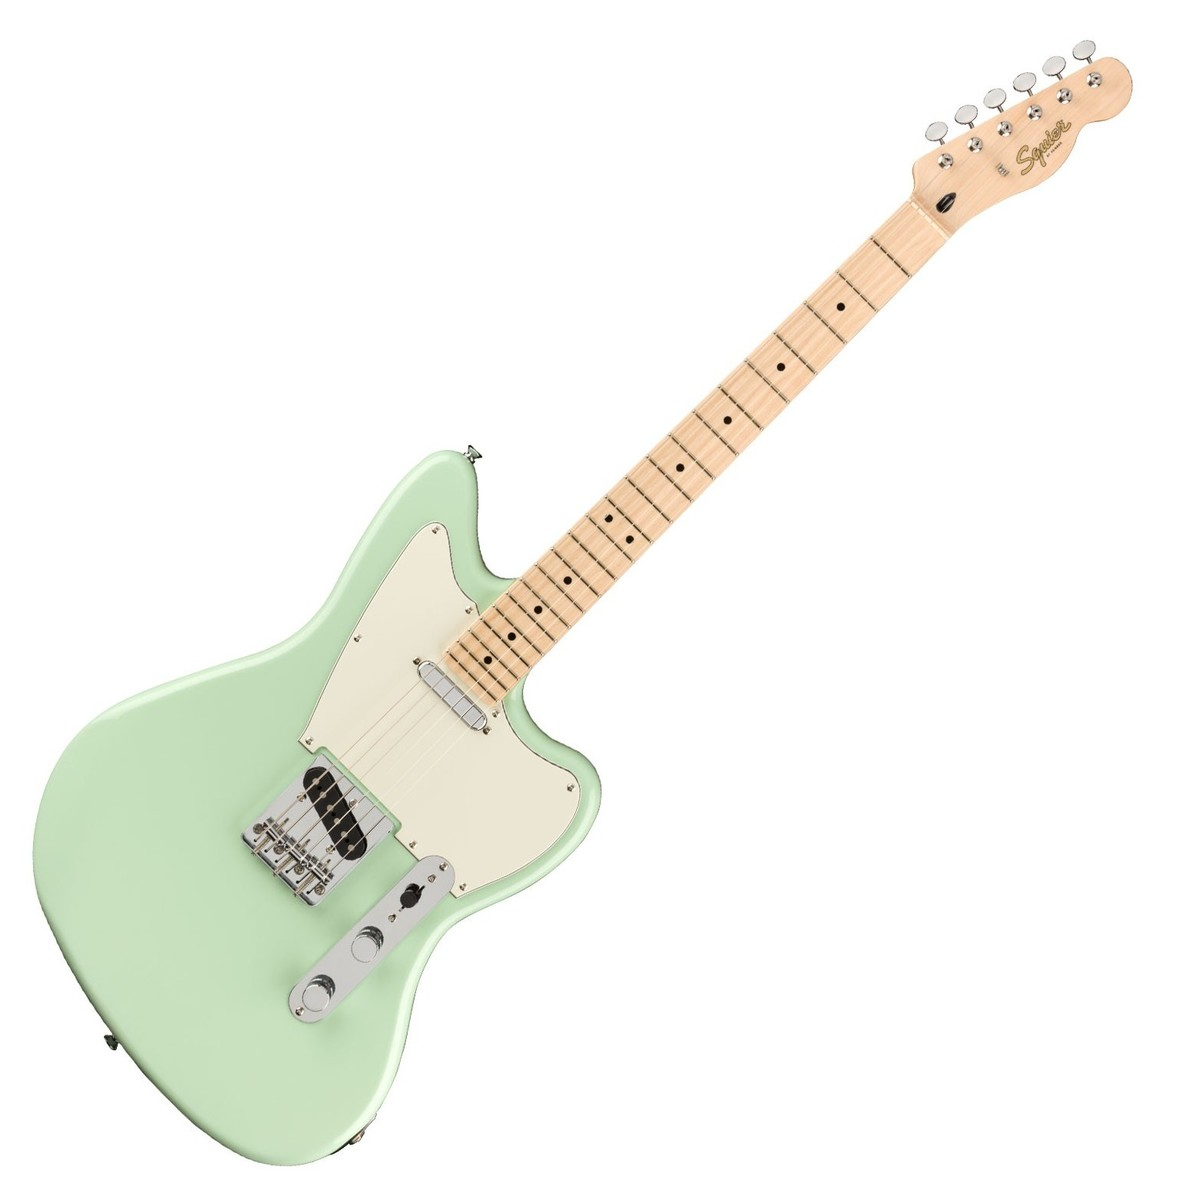 Squier Paranormal Offset Telecaster, Surf Green